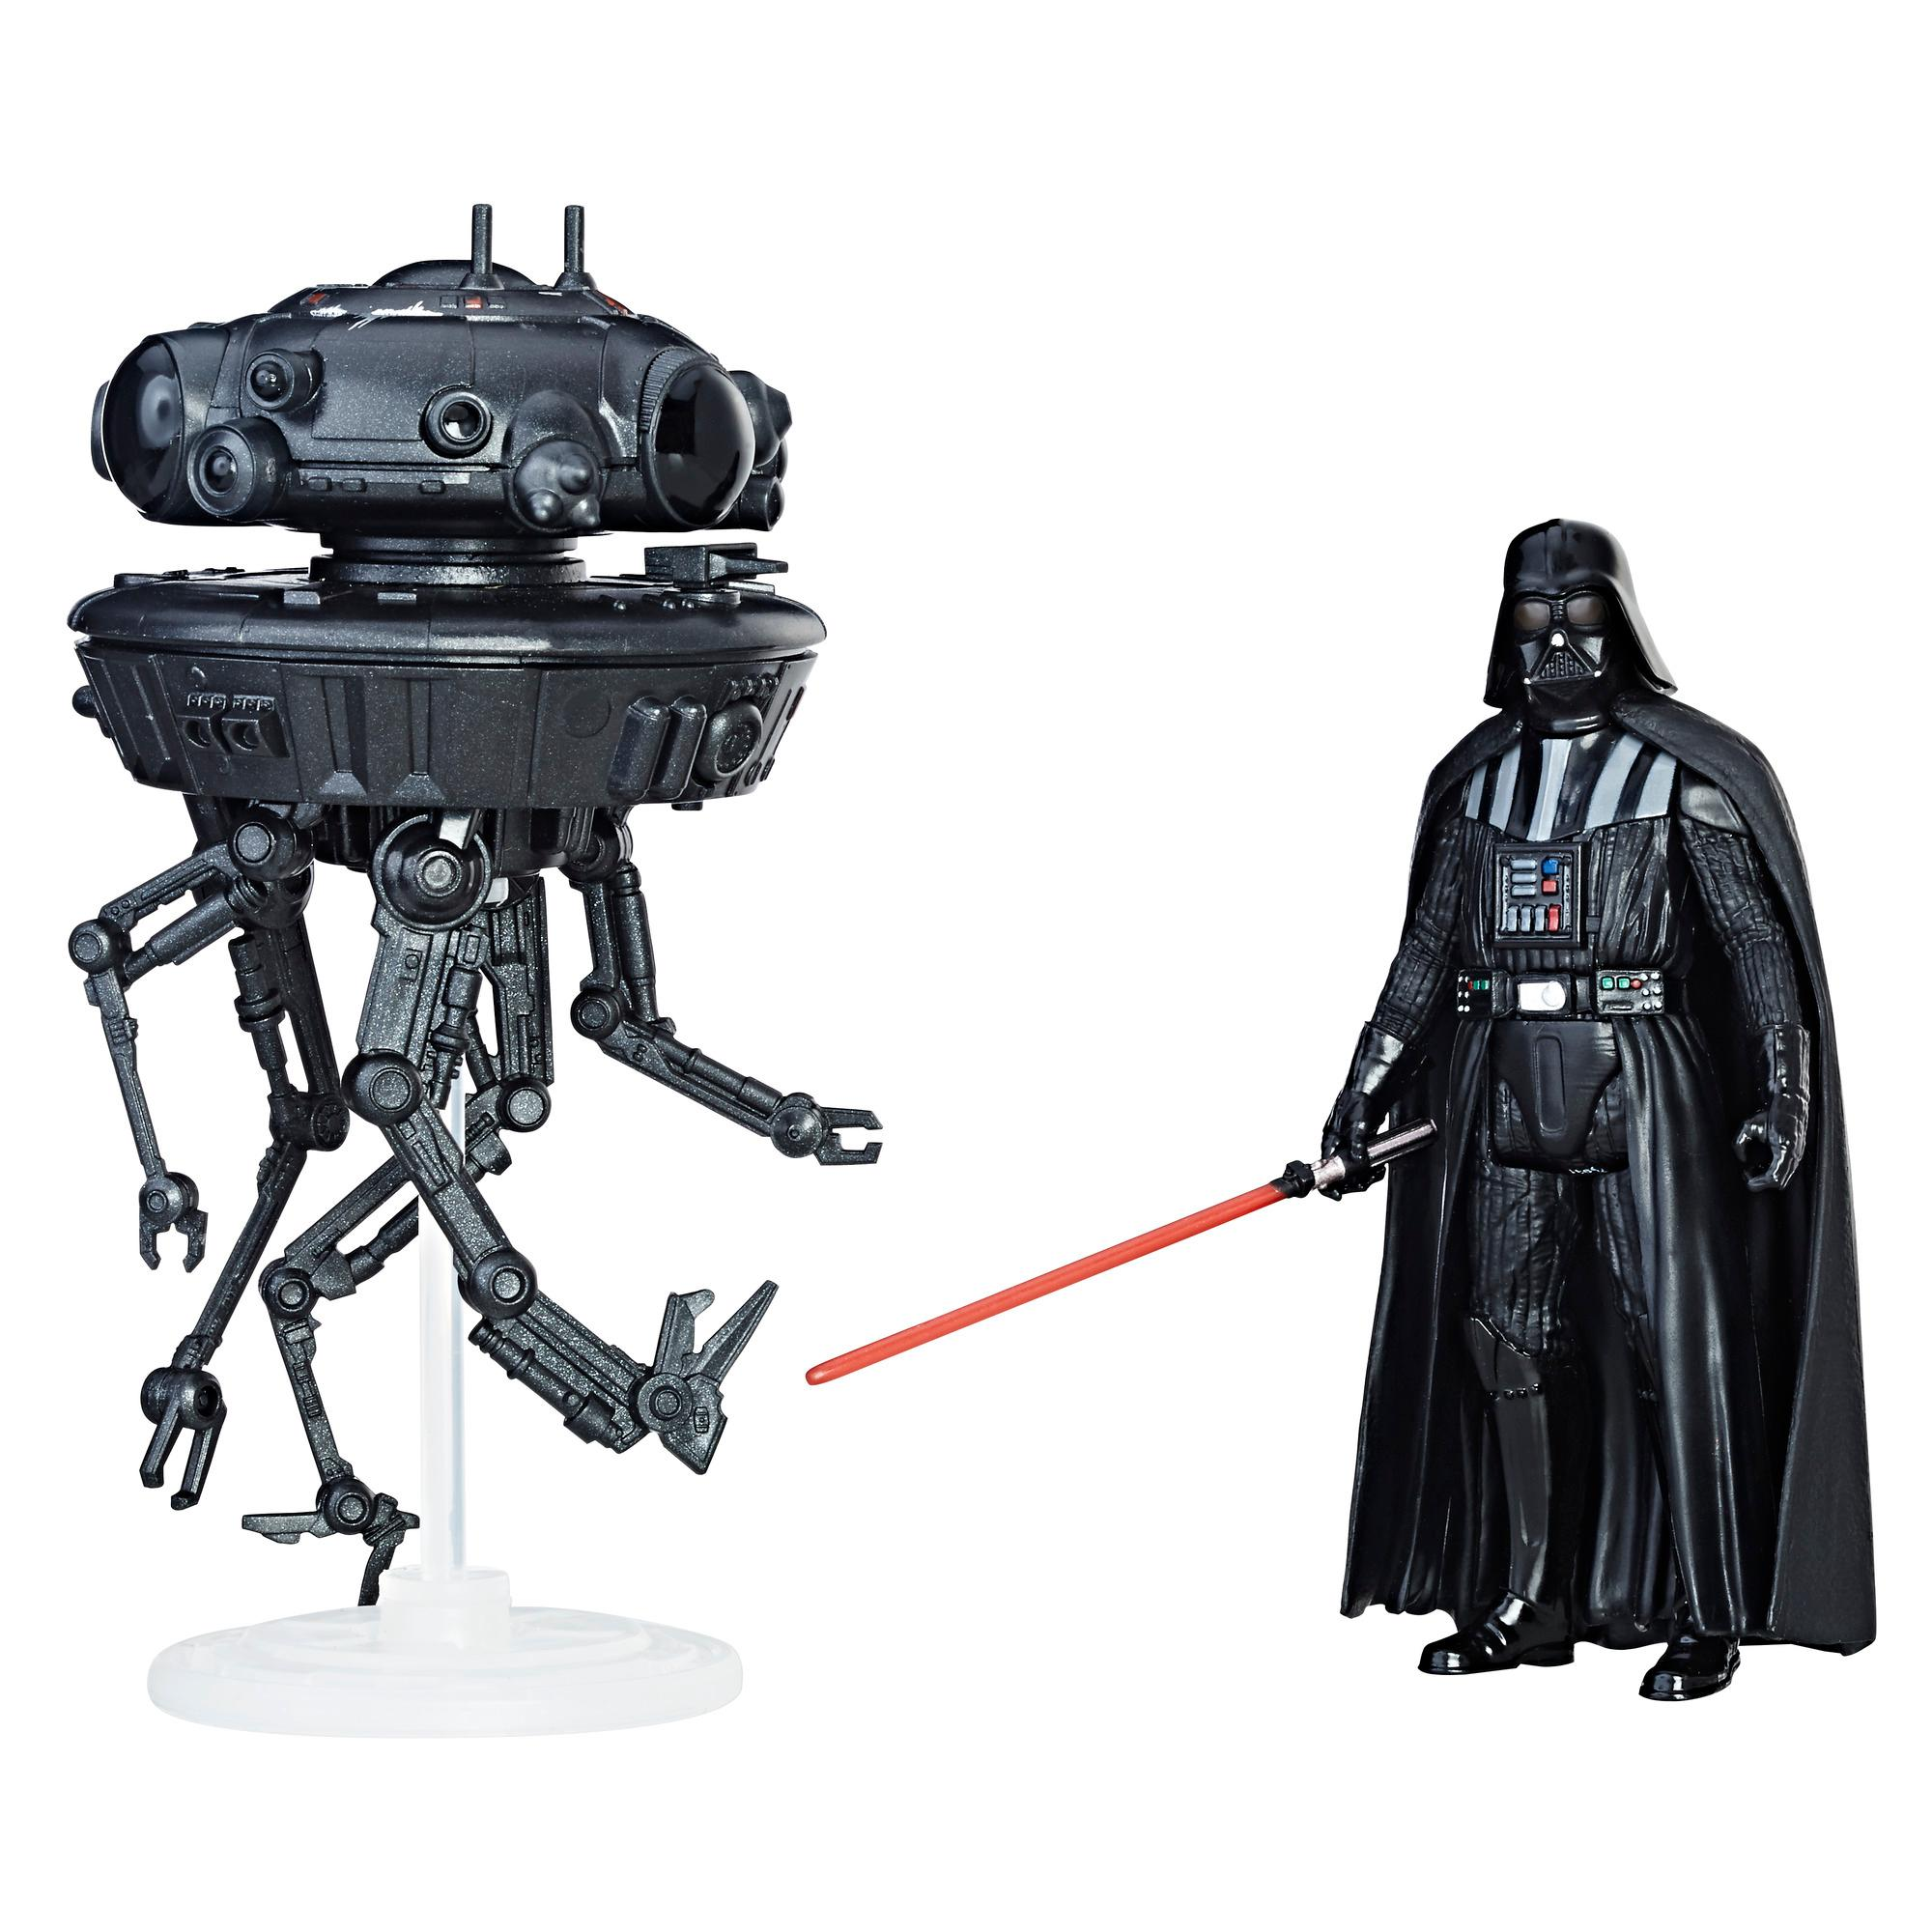 STAR WARS FORCE LINK IMPERIAL PROBE DROID & DARTH VADER